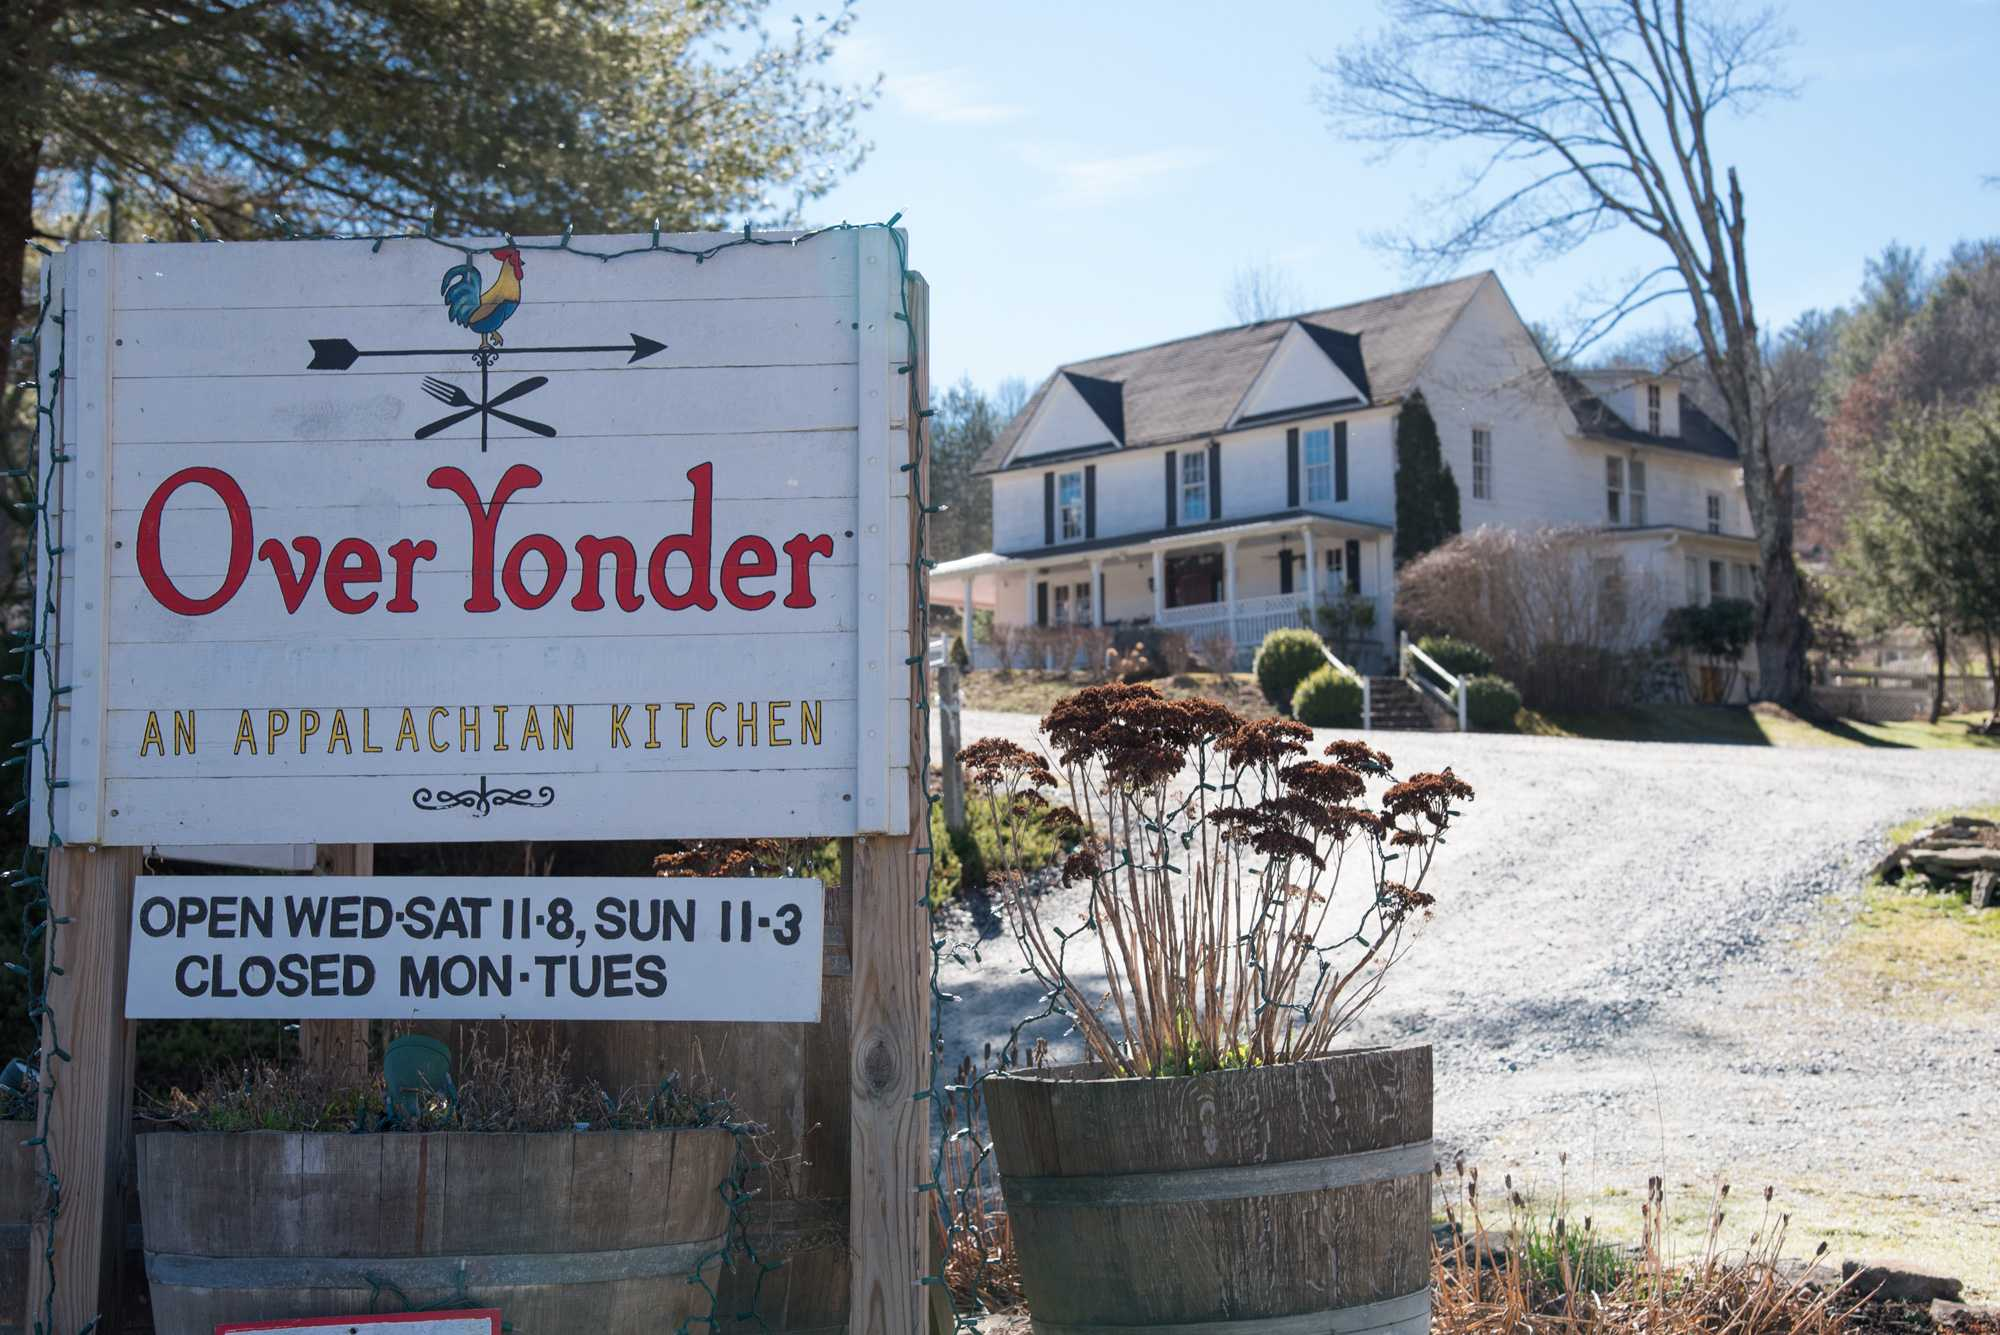 Over+Yonder+is+a+restaurant+located+in+Valle+Crucis%2C+NC+that+serves+classic+Appalachian+food.